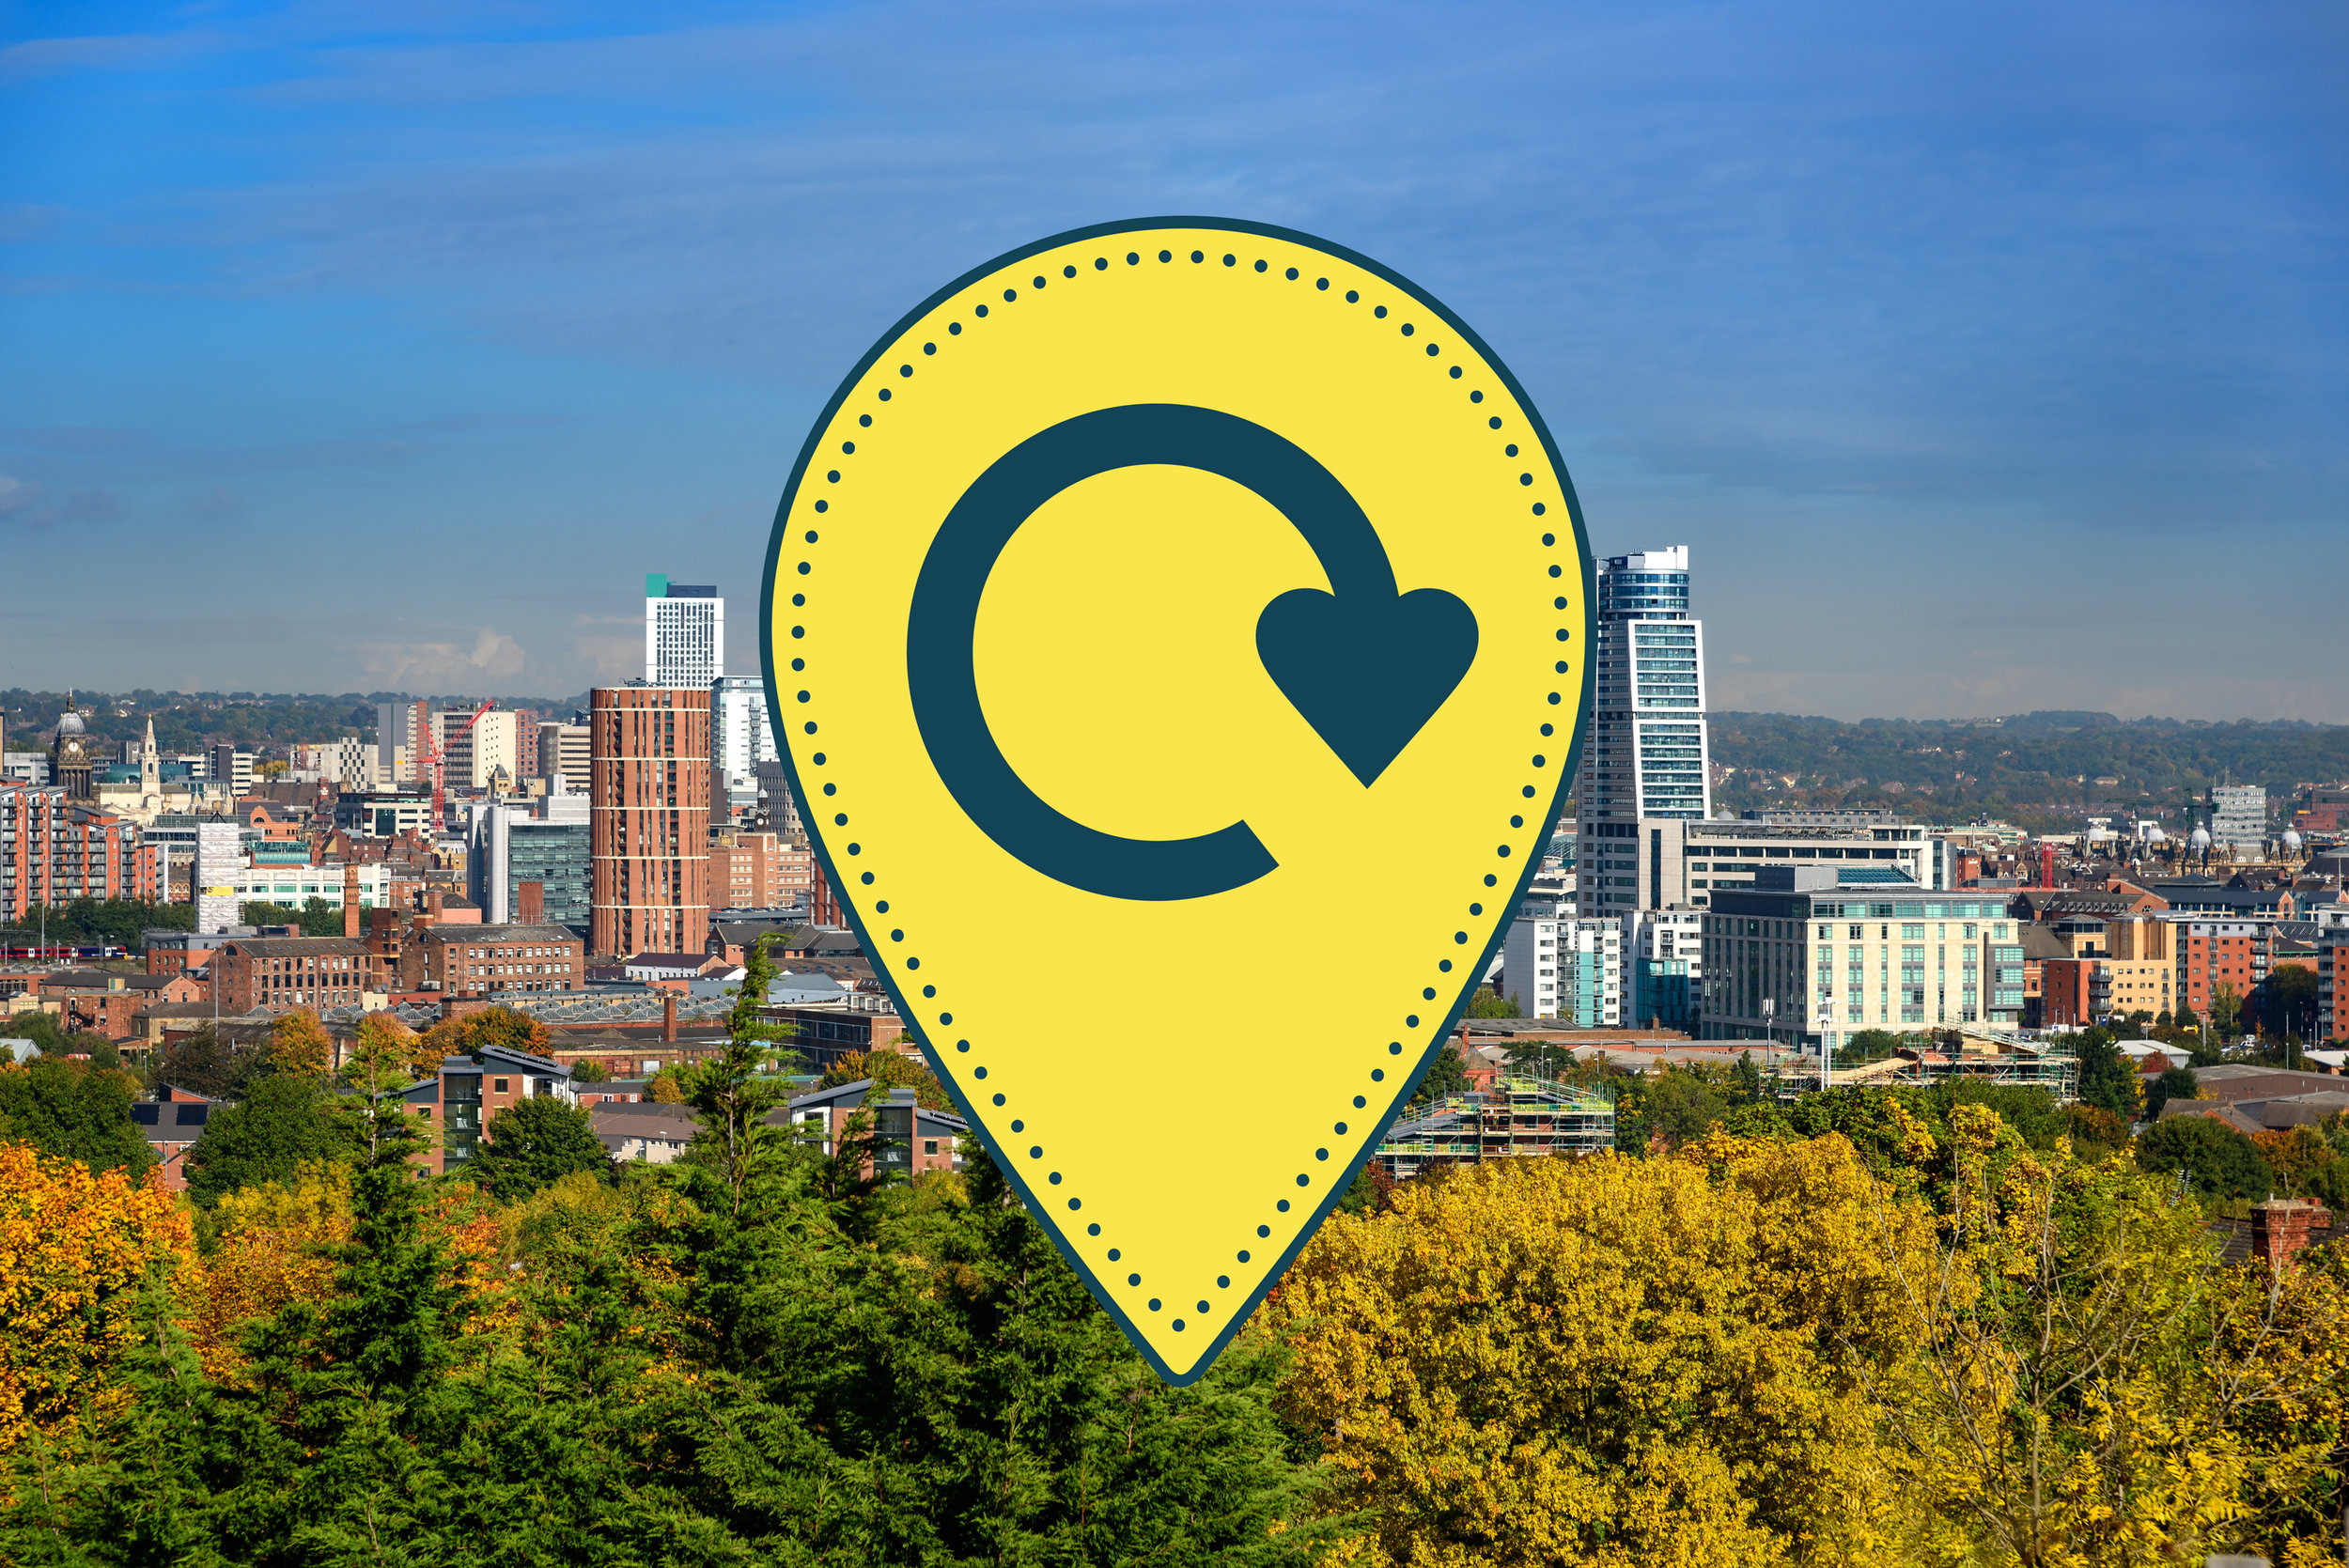 HUBBUB_Leeds-By-Example-recycling-on-the-go-campaign_Leeds-skyline_pin.jpg